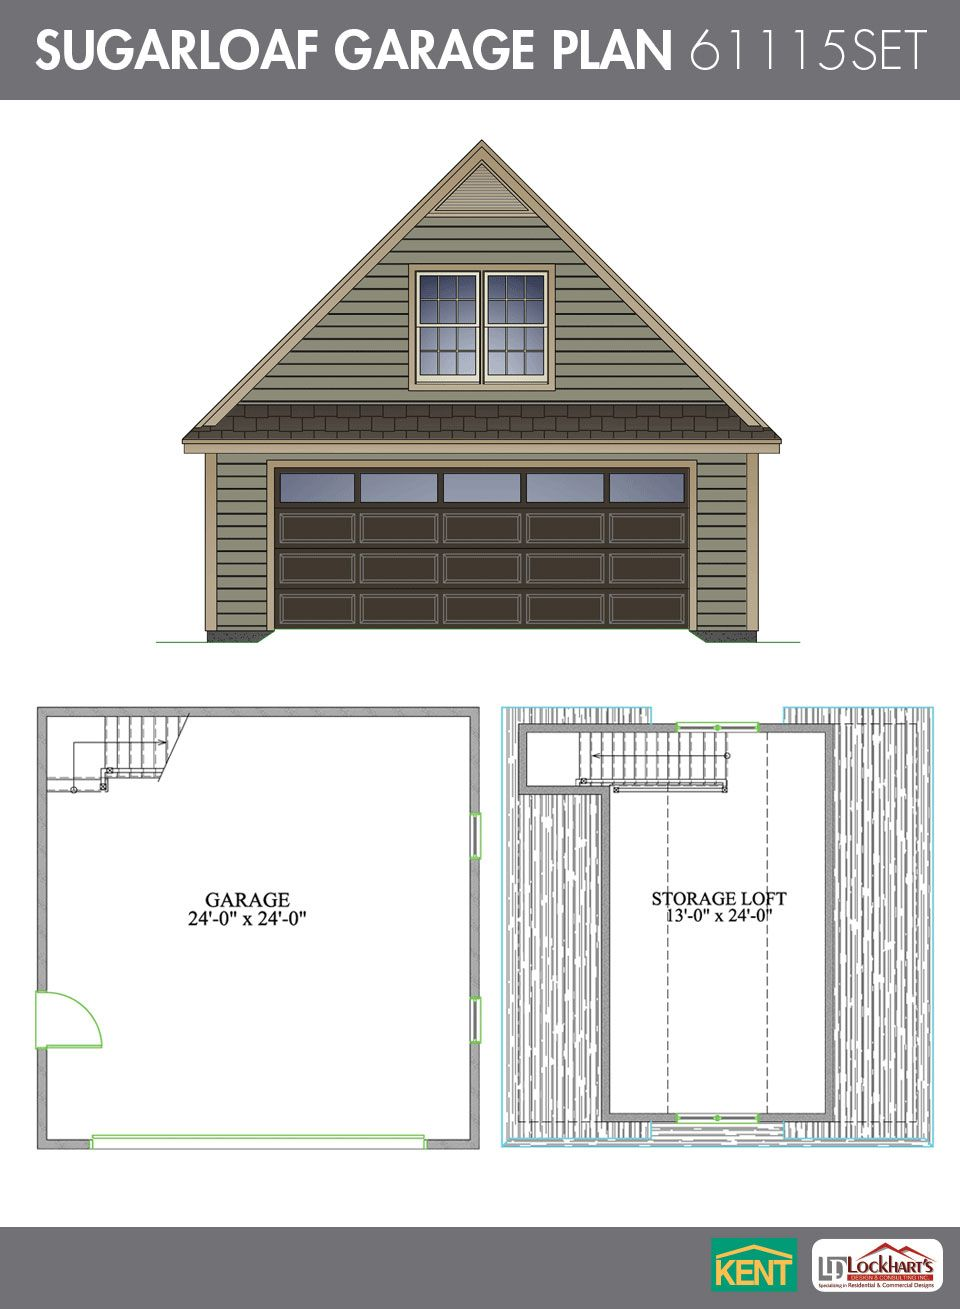 Sugarloaf garage plan 26 39 x 28 39 2 car garage 378 sq ft 2 car garage square footage